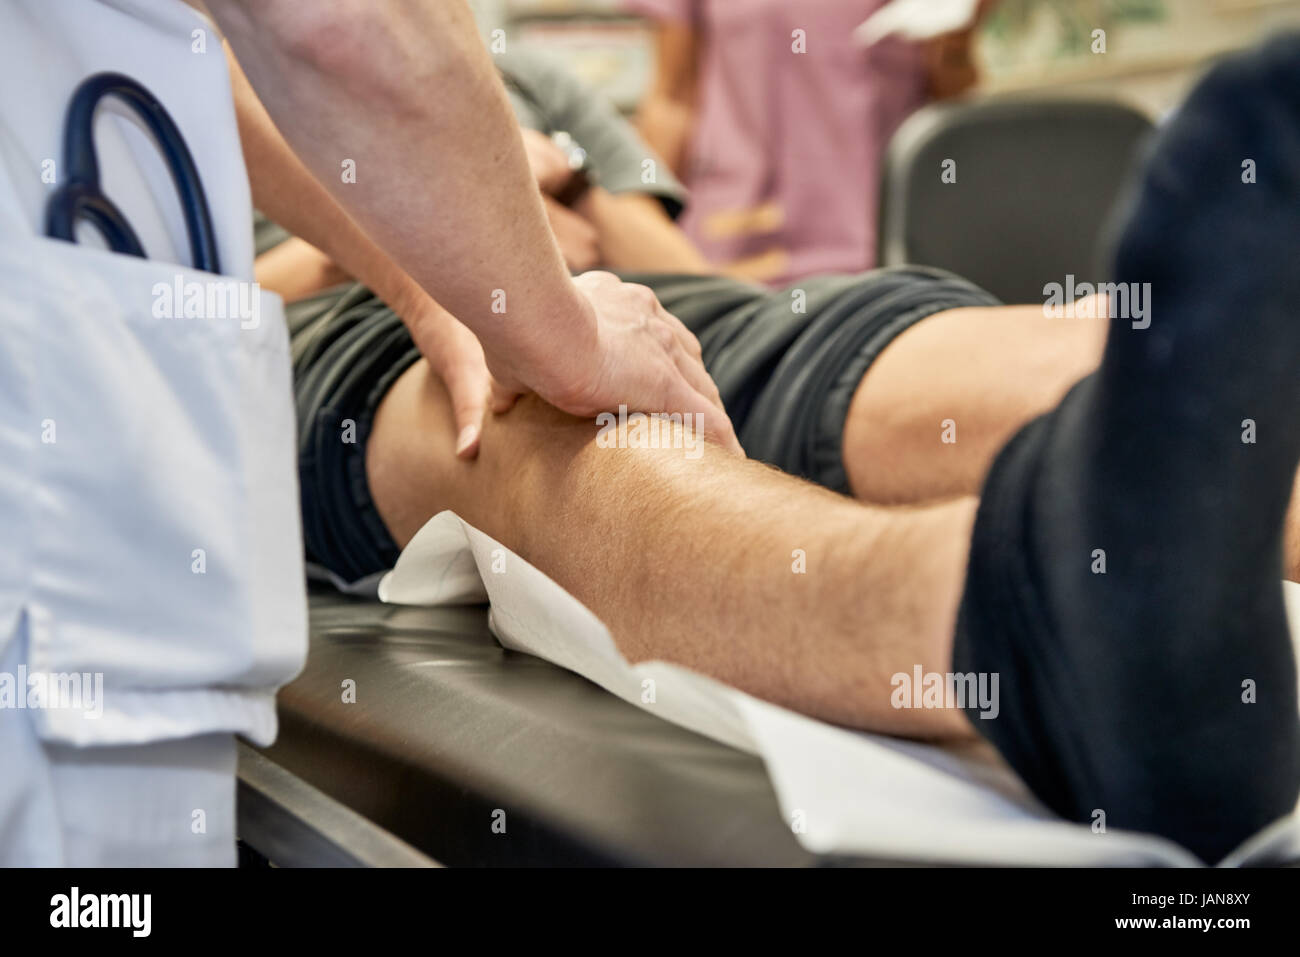 orthopedist is checking a knee by scanning with the hands - Stock Image